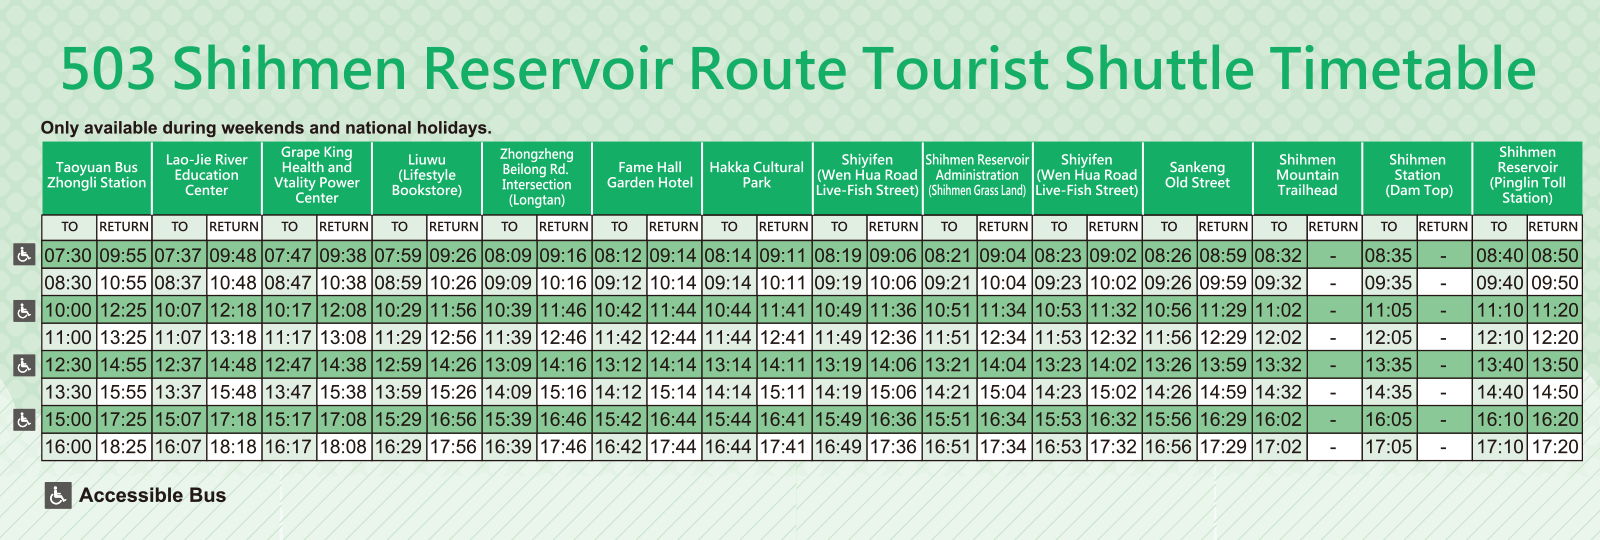 Shihmen Reservoir Route Timetable